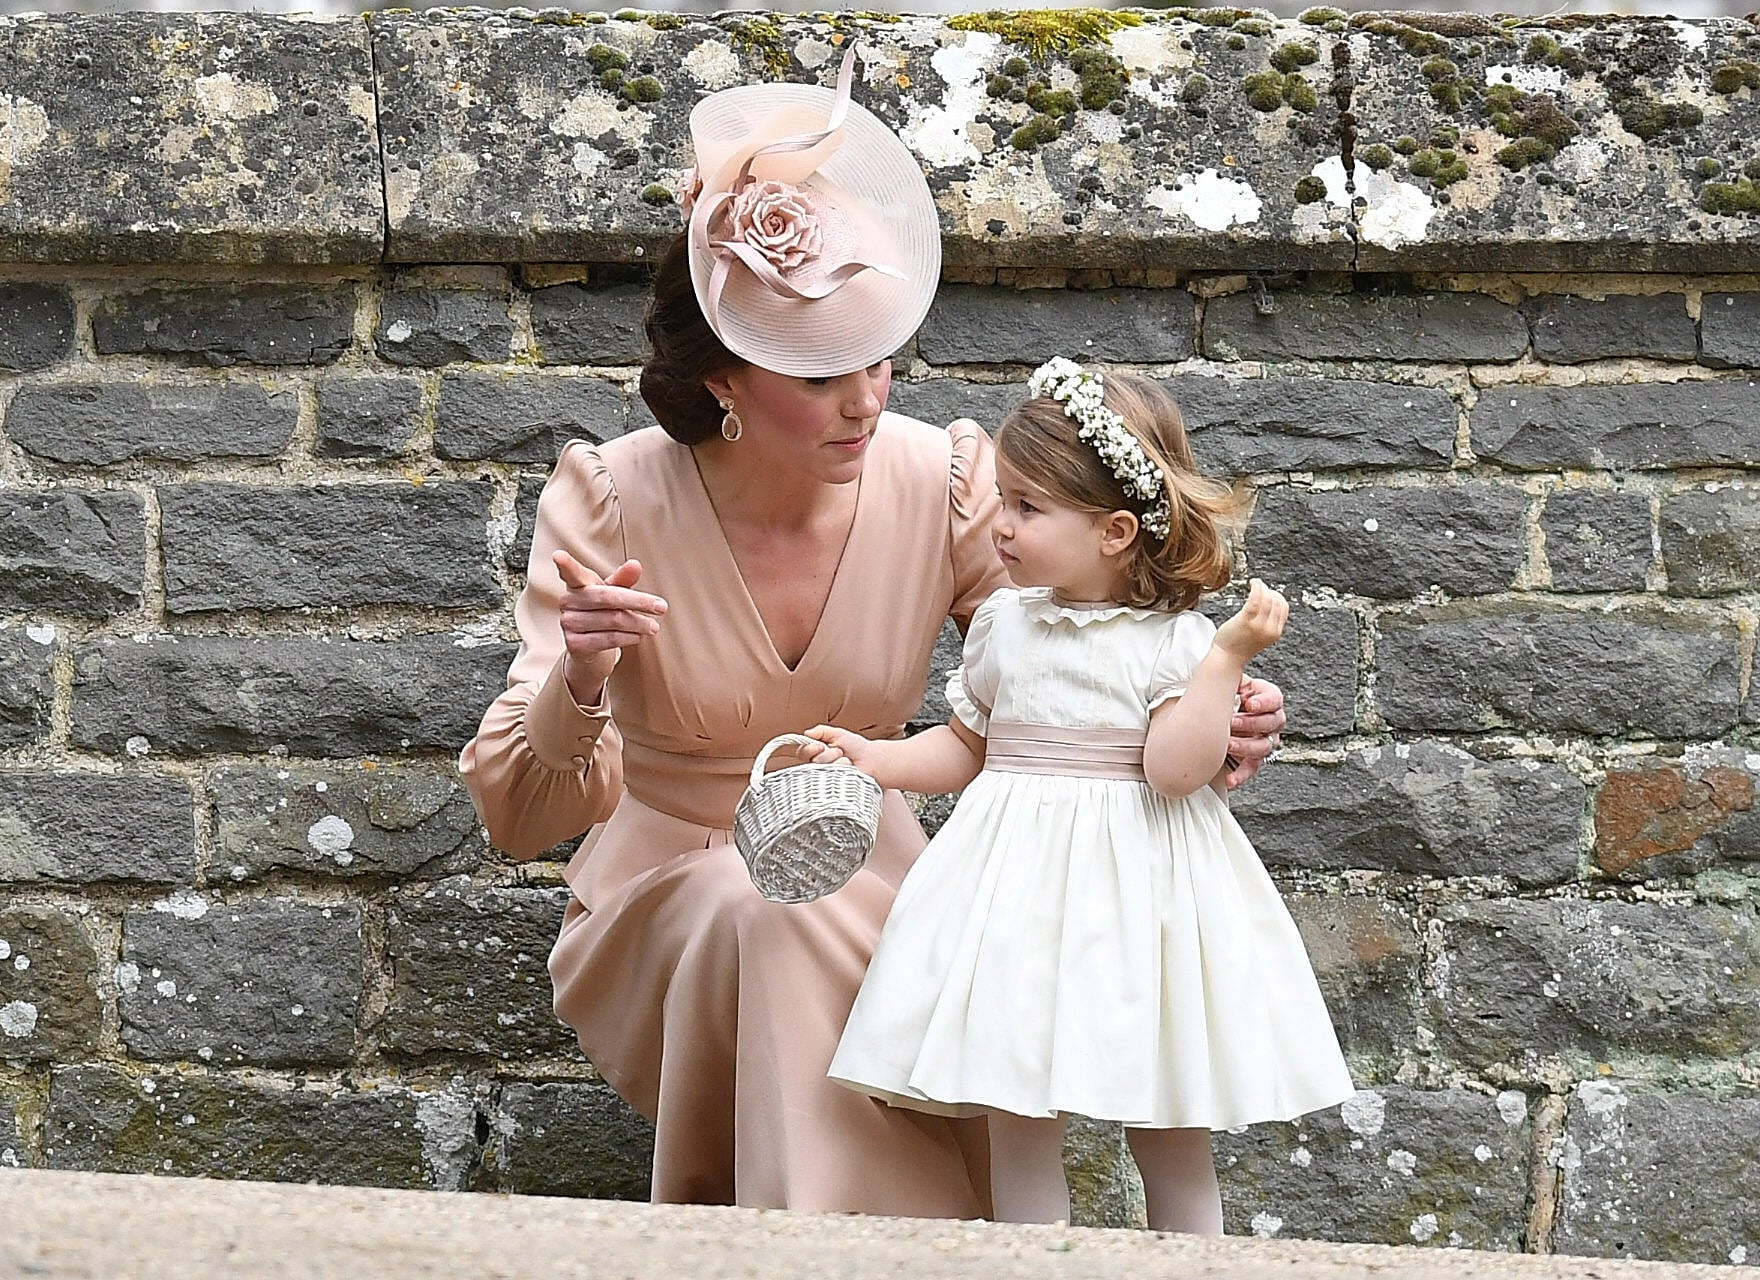 ENGLEFIELD GREEN, ENGLAND - MAY 20:  Catherine, Duchess of Cambridge and Princess Charlotte of Cambridge, bridesmaid leave the wedding of Pippa Middleton and James Matthews at St Mark's Church on May 20, 2017 in Englefield Green, England.  (Photo by Samir Hussein/Samir Hussein/WireImage)